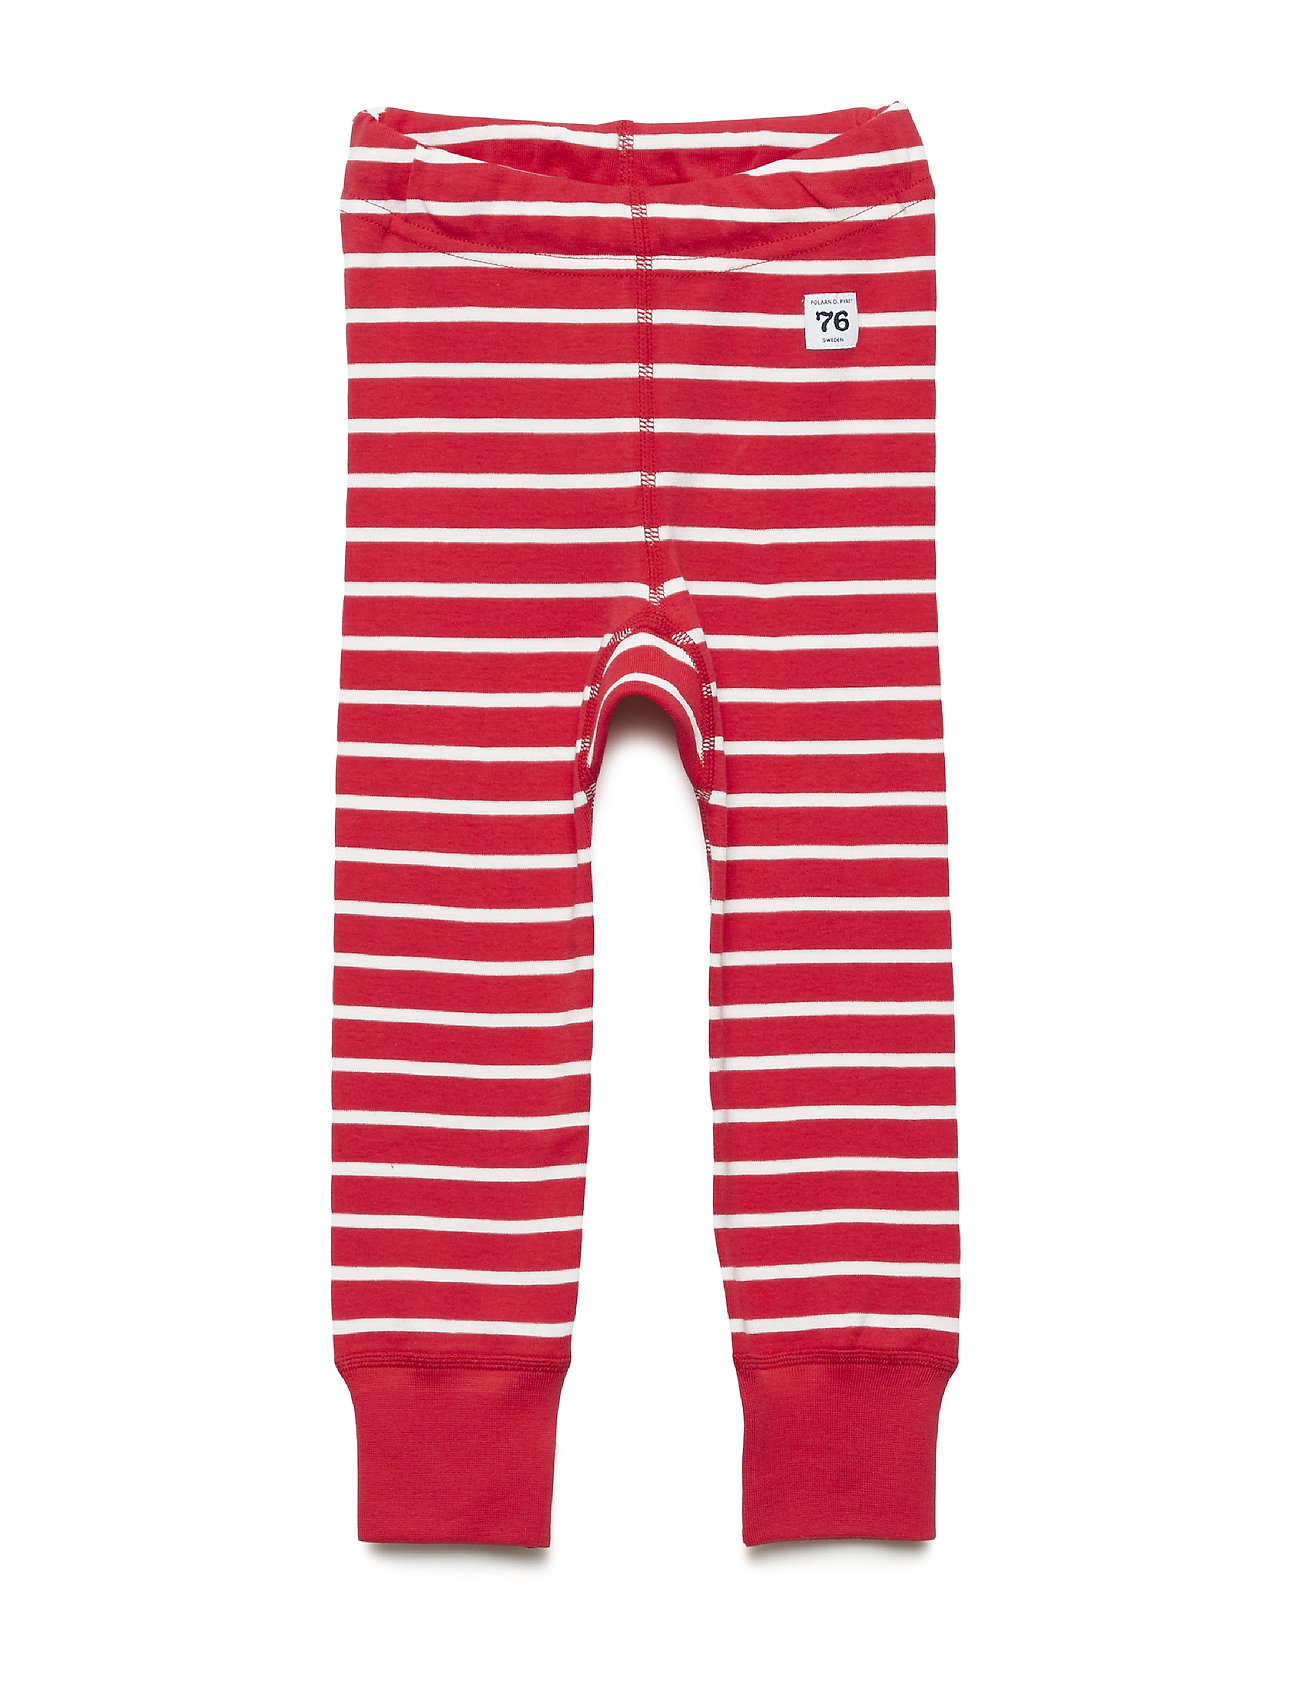 Polarn O. Pyret Long Johns PO.P Stripe Baby